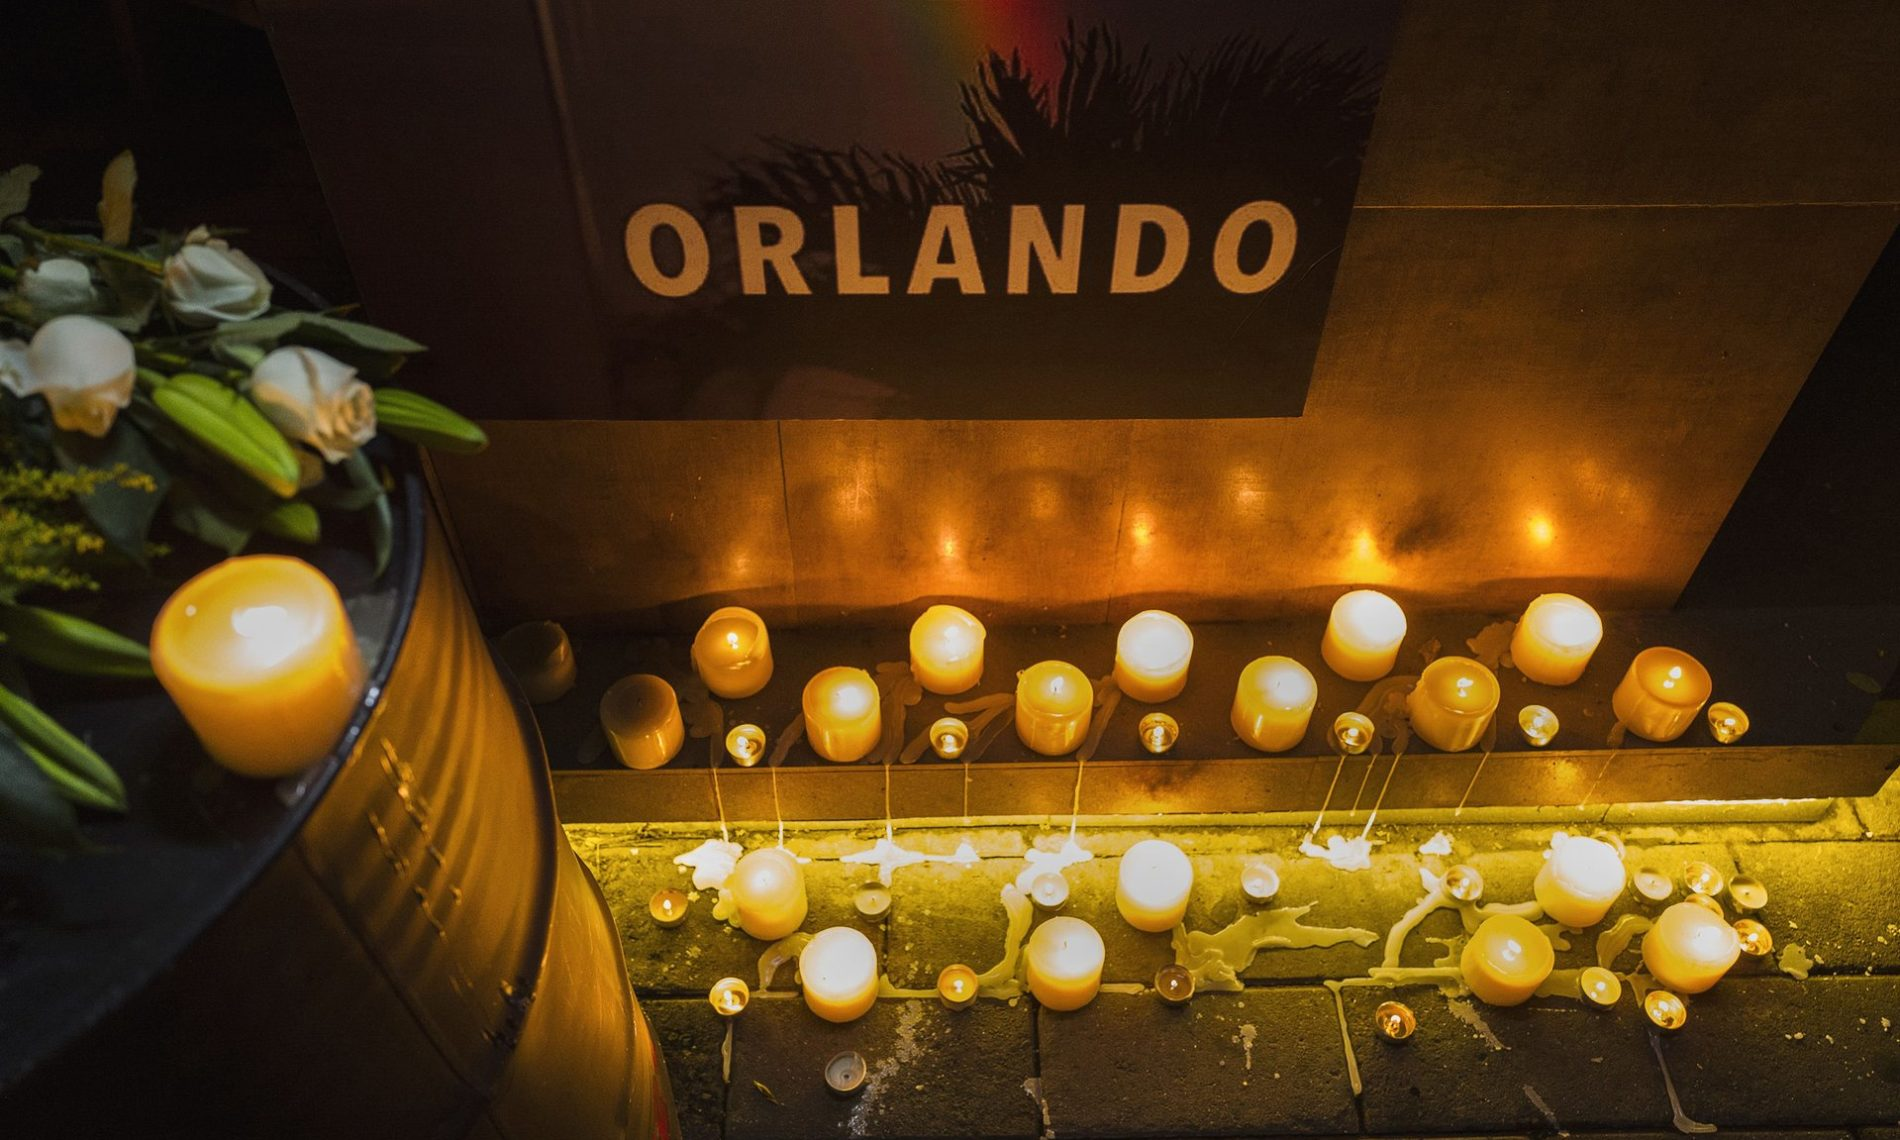 The Piece On Islam, Homophobia, and the Orlando Gay Massacre